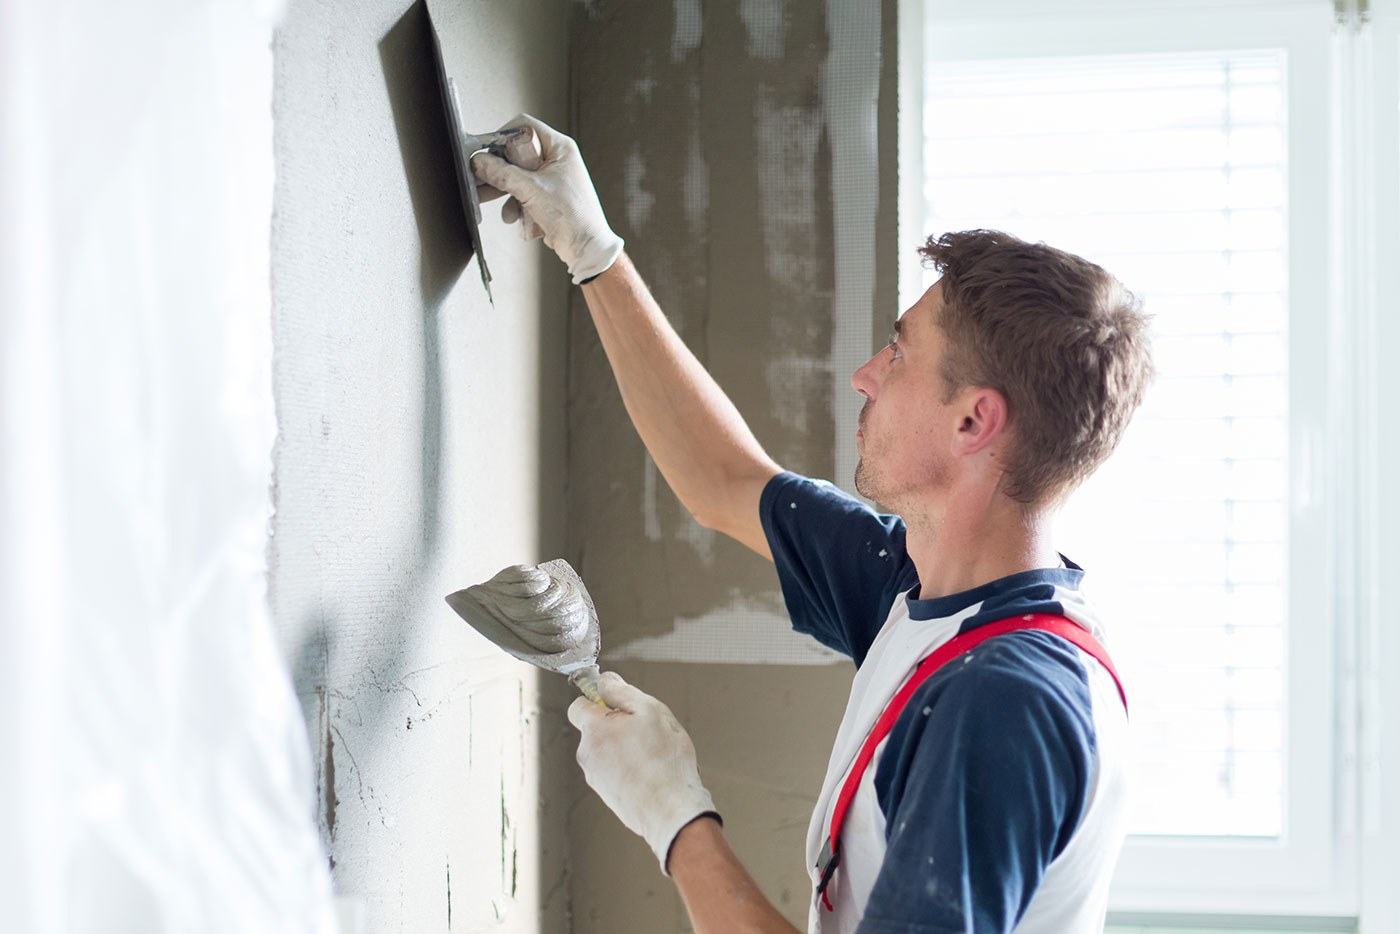 man spackling wall